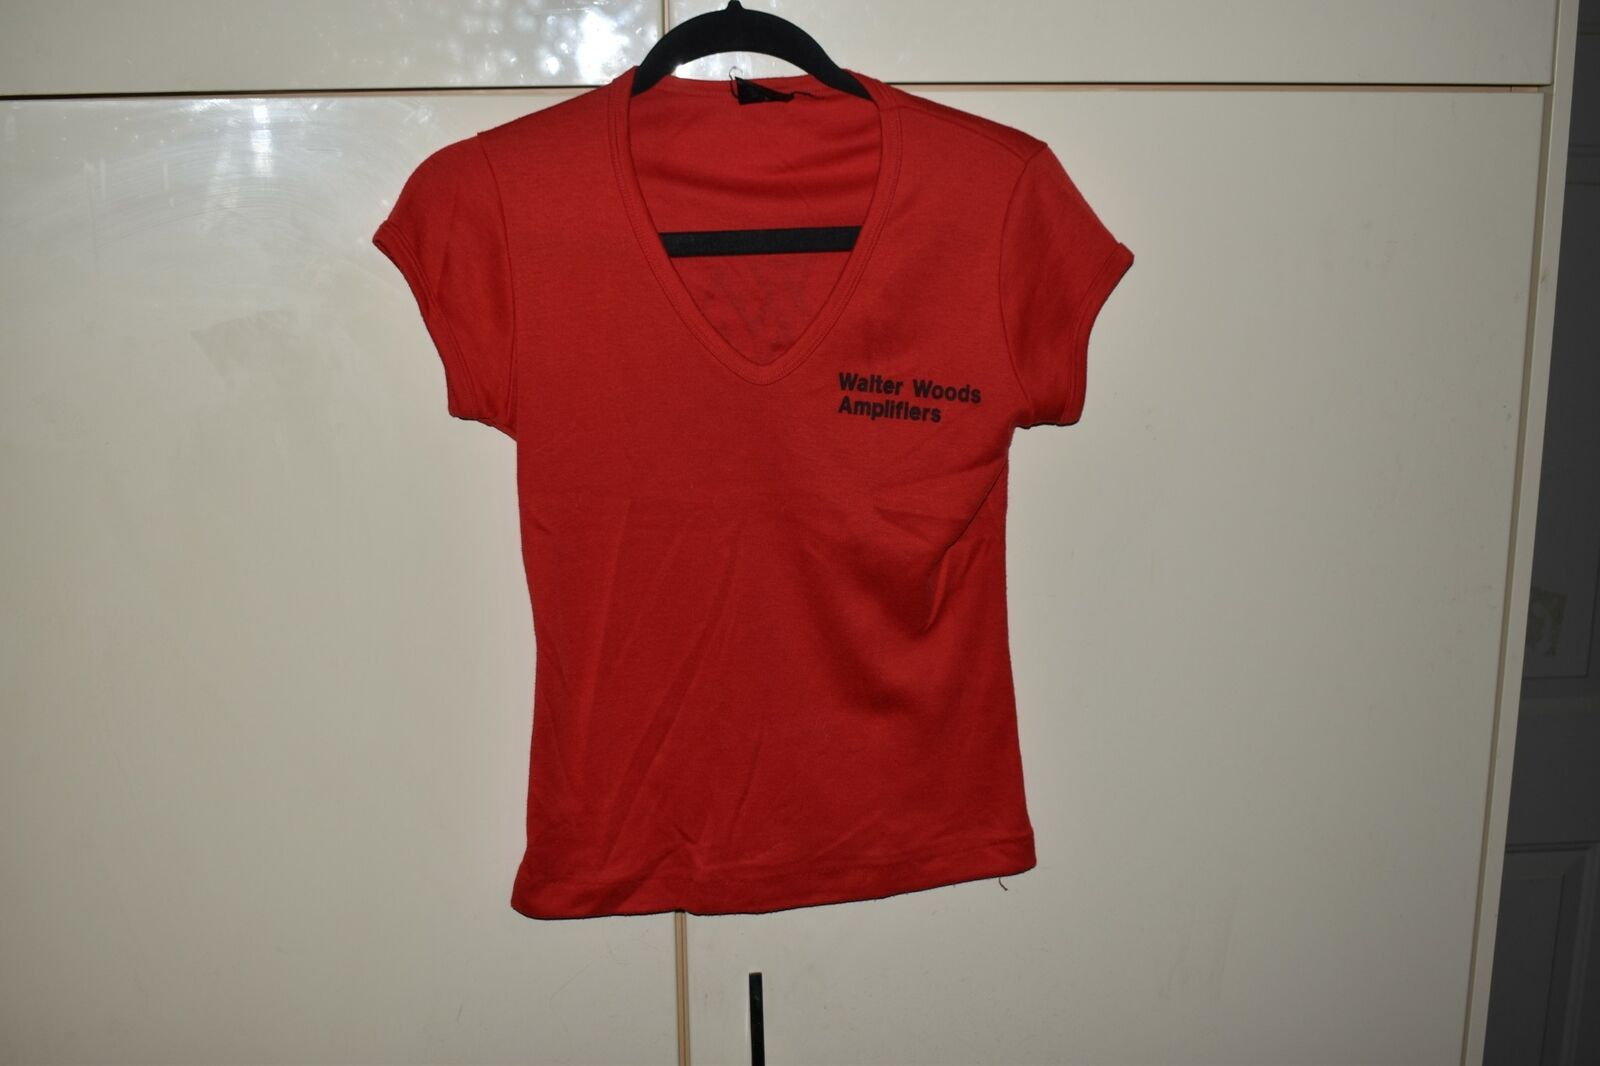 <MA> VTG GRAPHIC T-SHIRT- WALTER WOODS AMPLIFIERS (TS8)